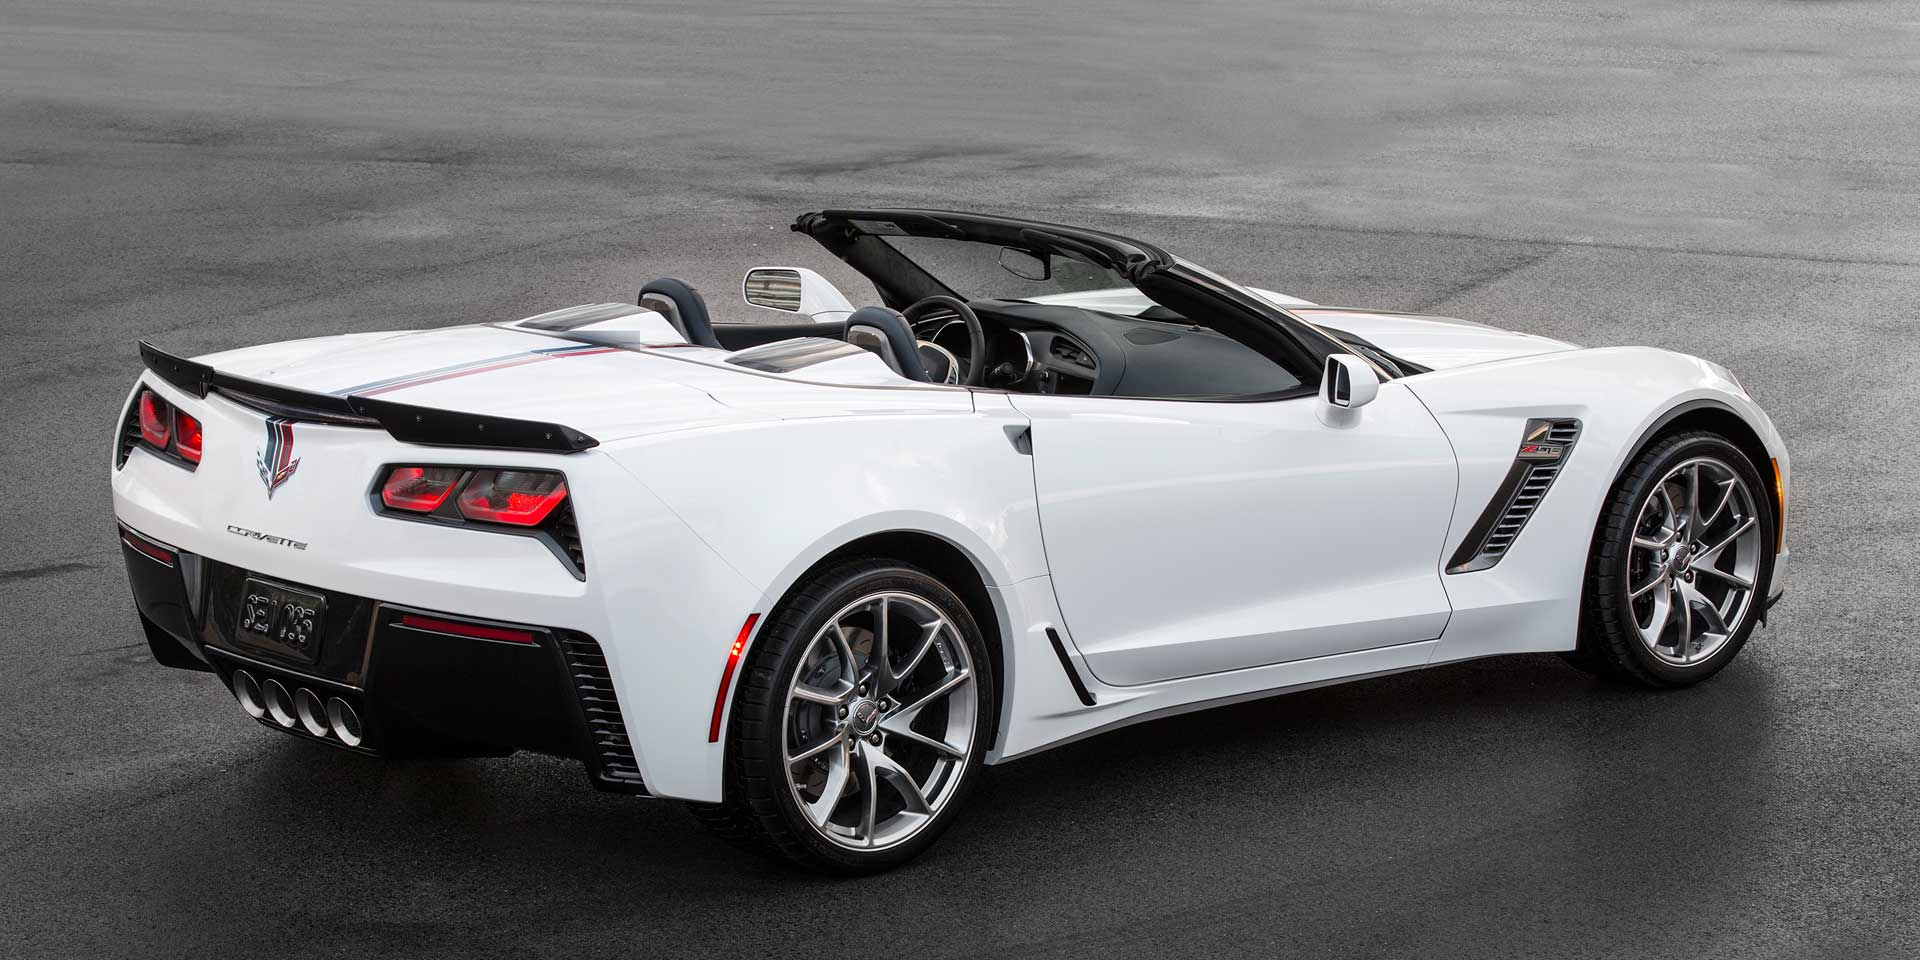 2017 Chevrolet Corvette The Is This Year S Version Of Brand Iconic American Two Seat Sports Car